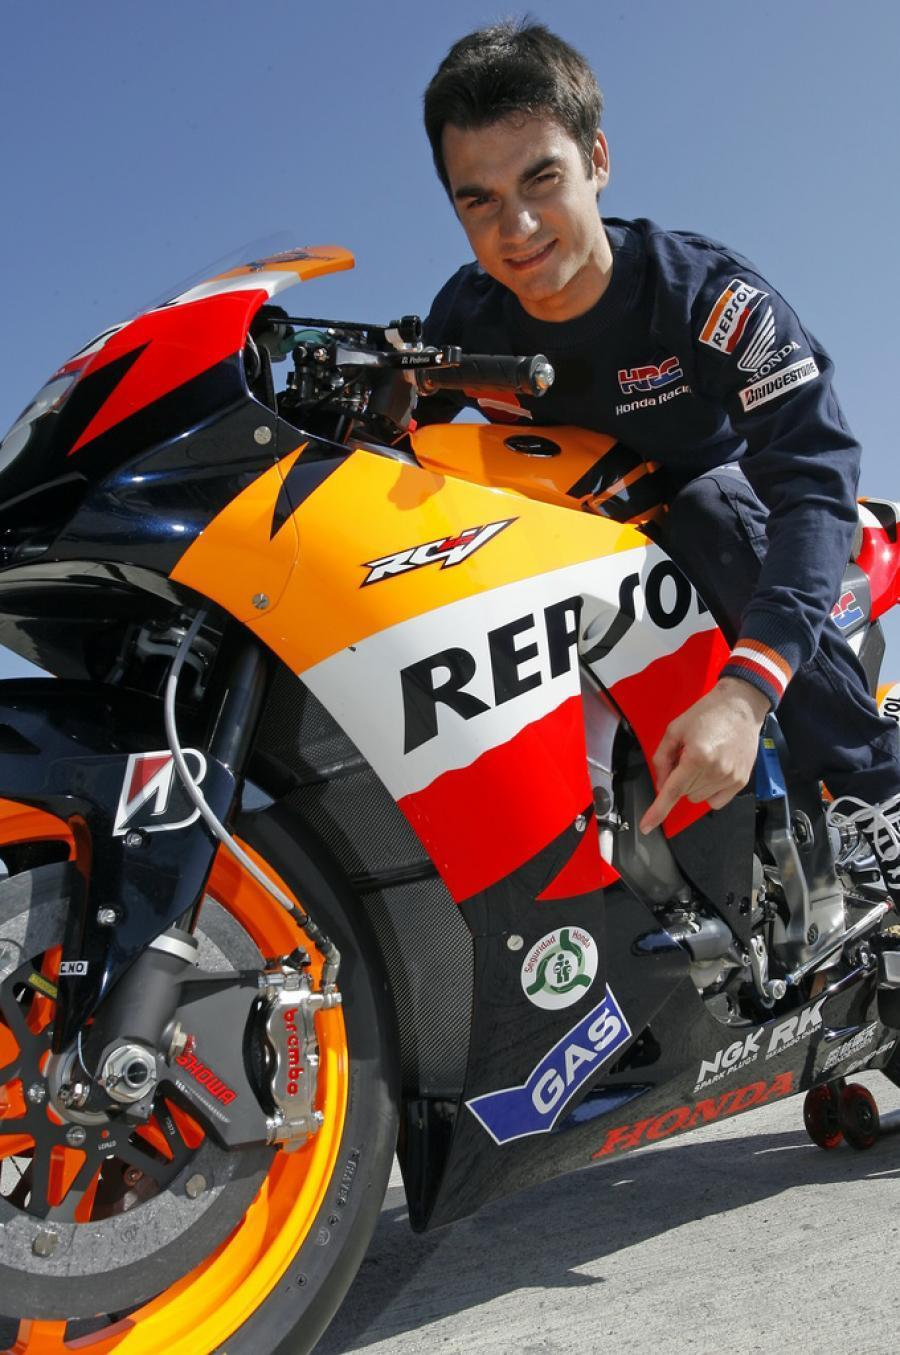 World Heavy Bikes Dani Pedrosa Bike Champoin